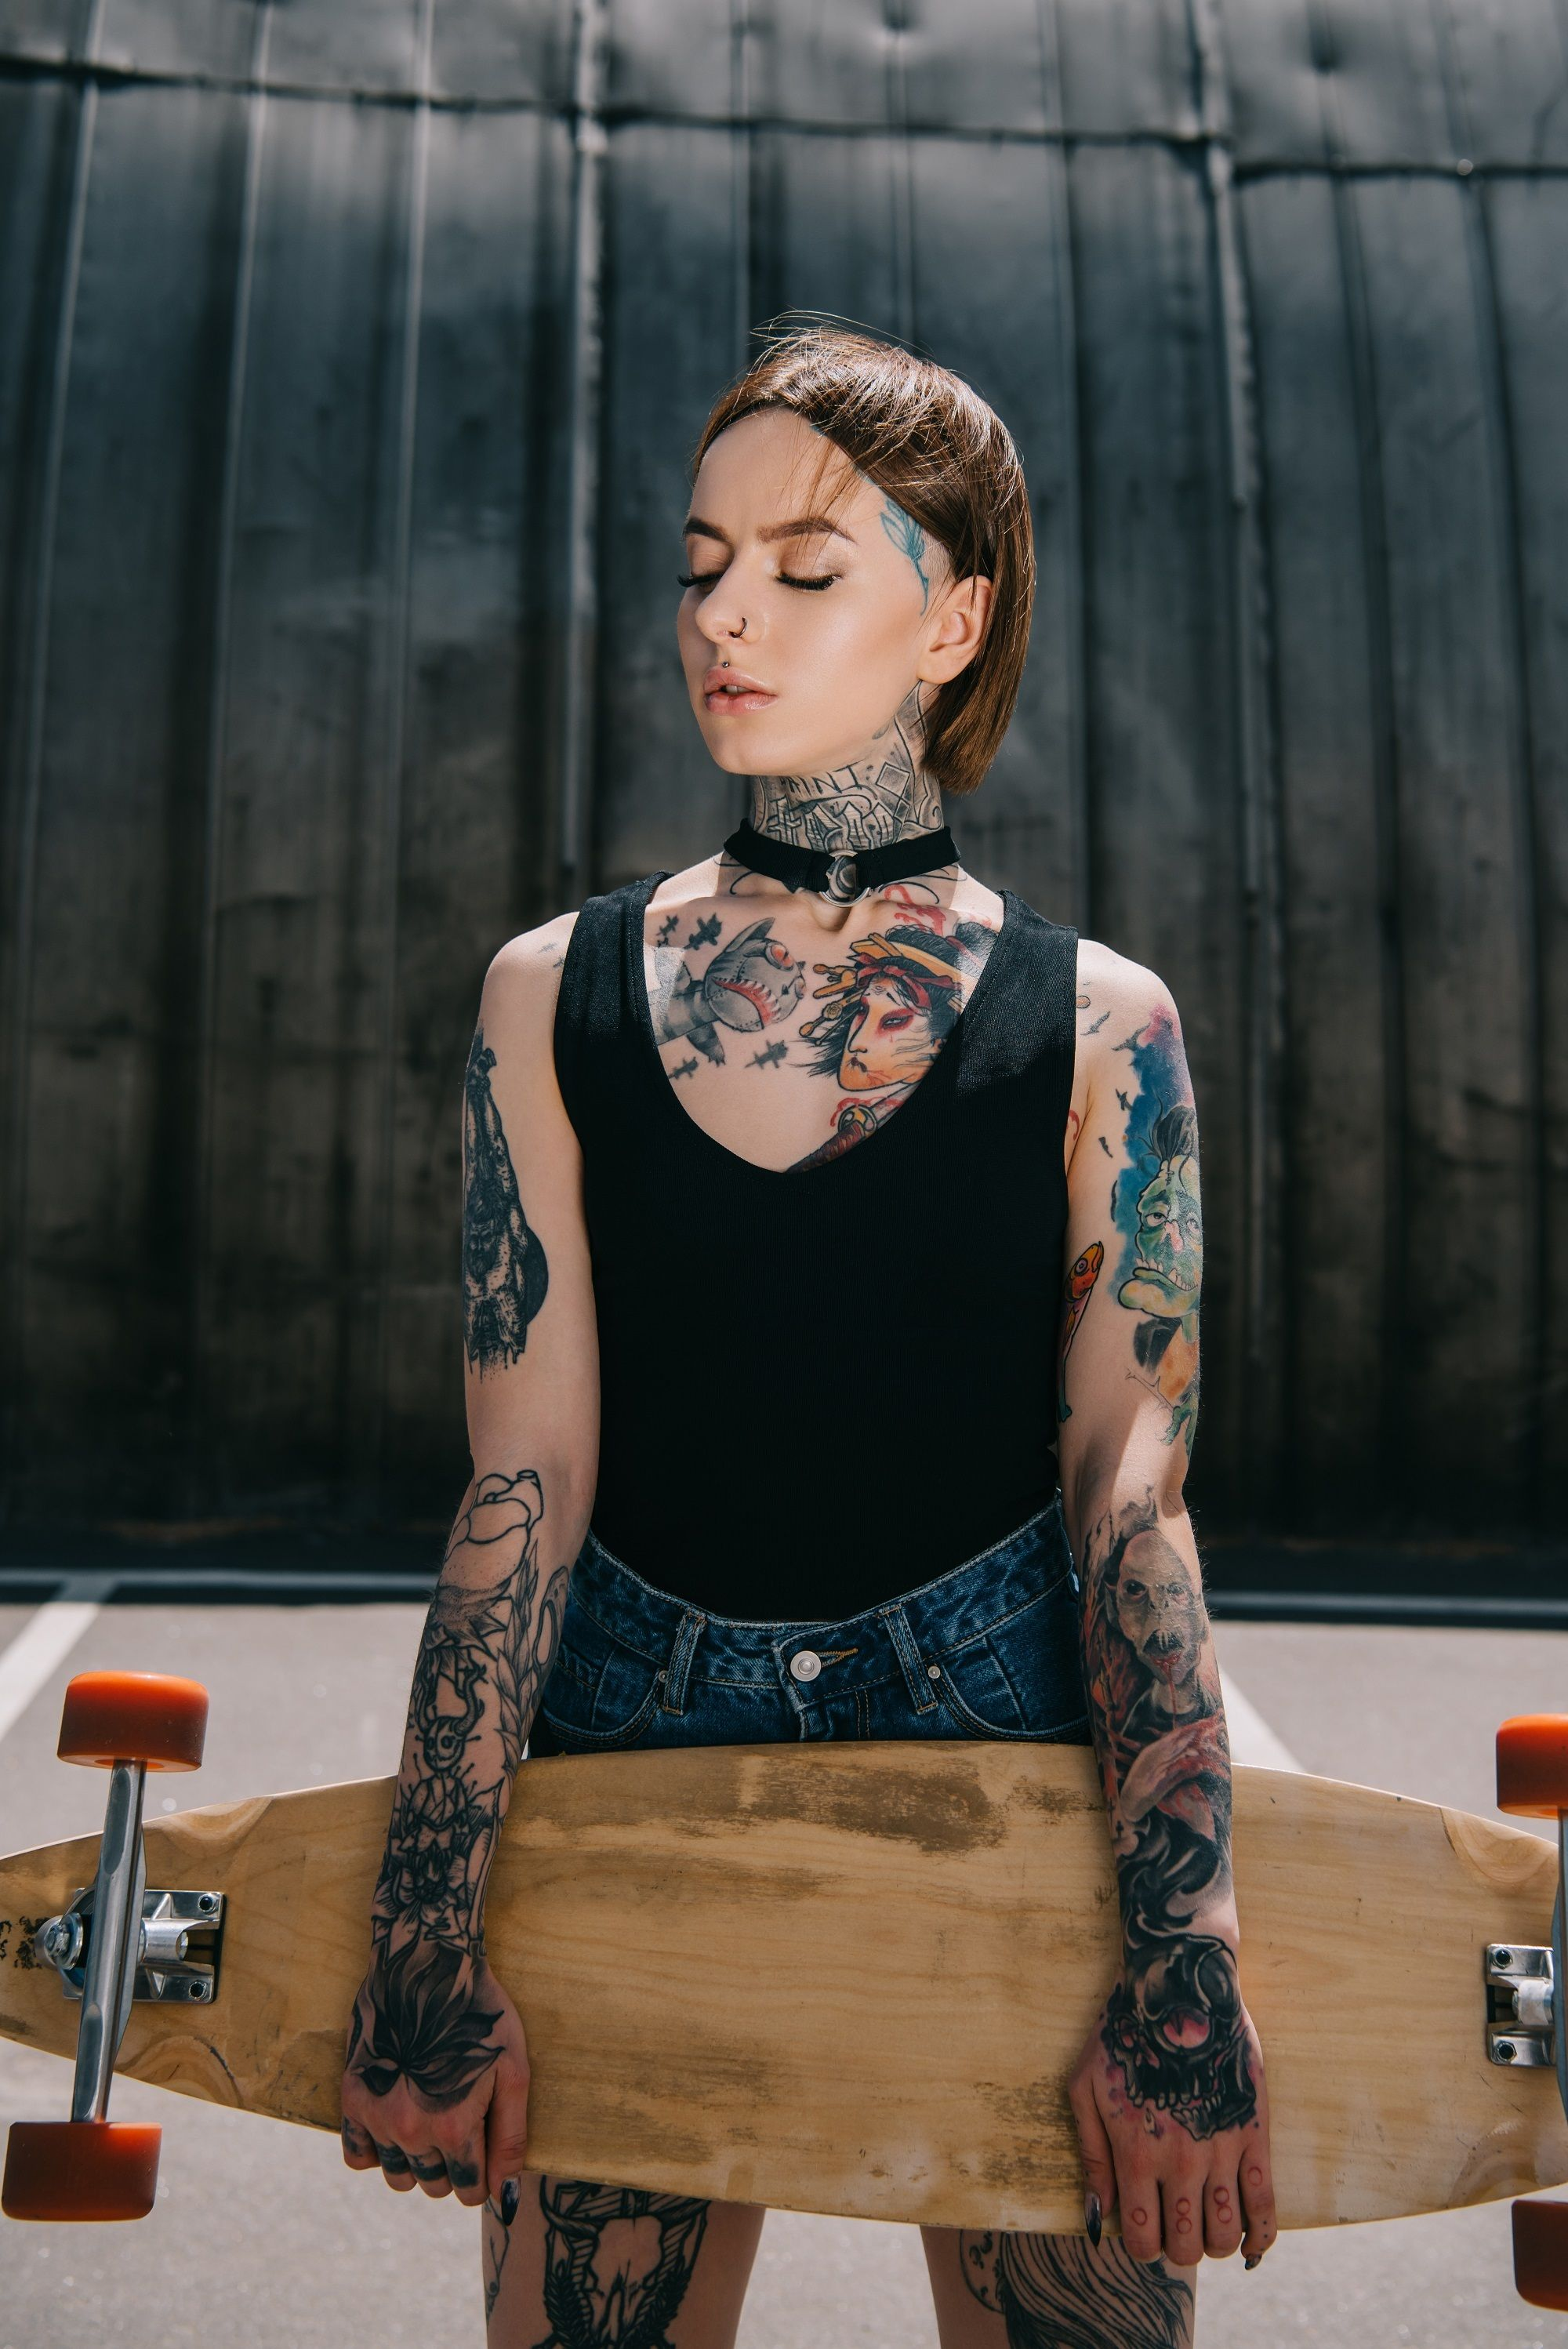 Hairstyles for skaters: Woman with slicked back bob and tattoos holding a skateboard